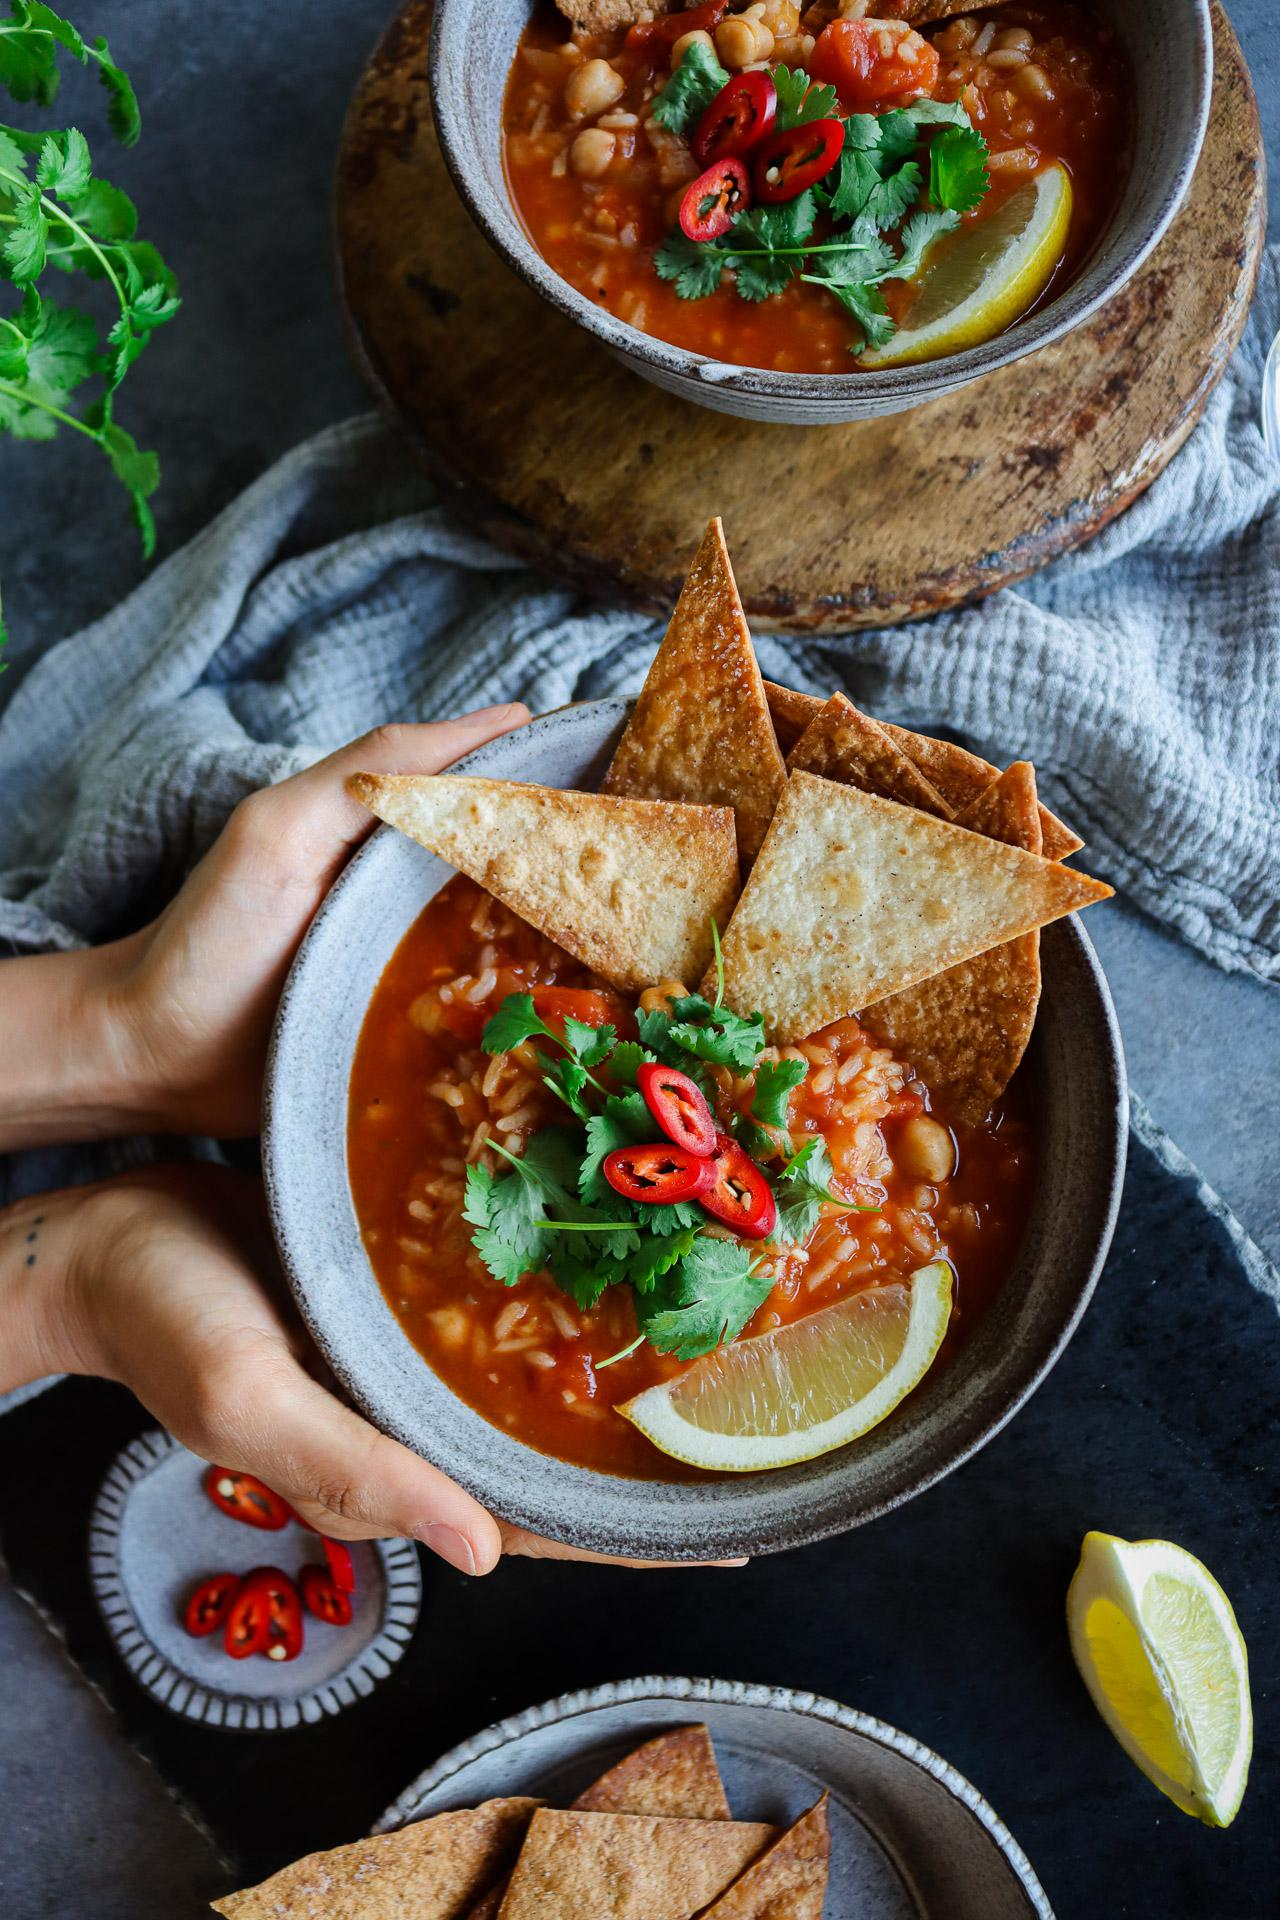 Main image of Chickpea and Rice Tortilla Soup